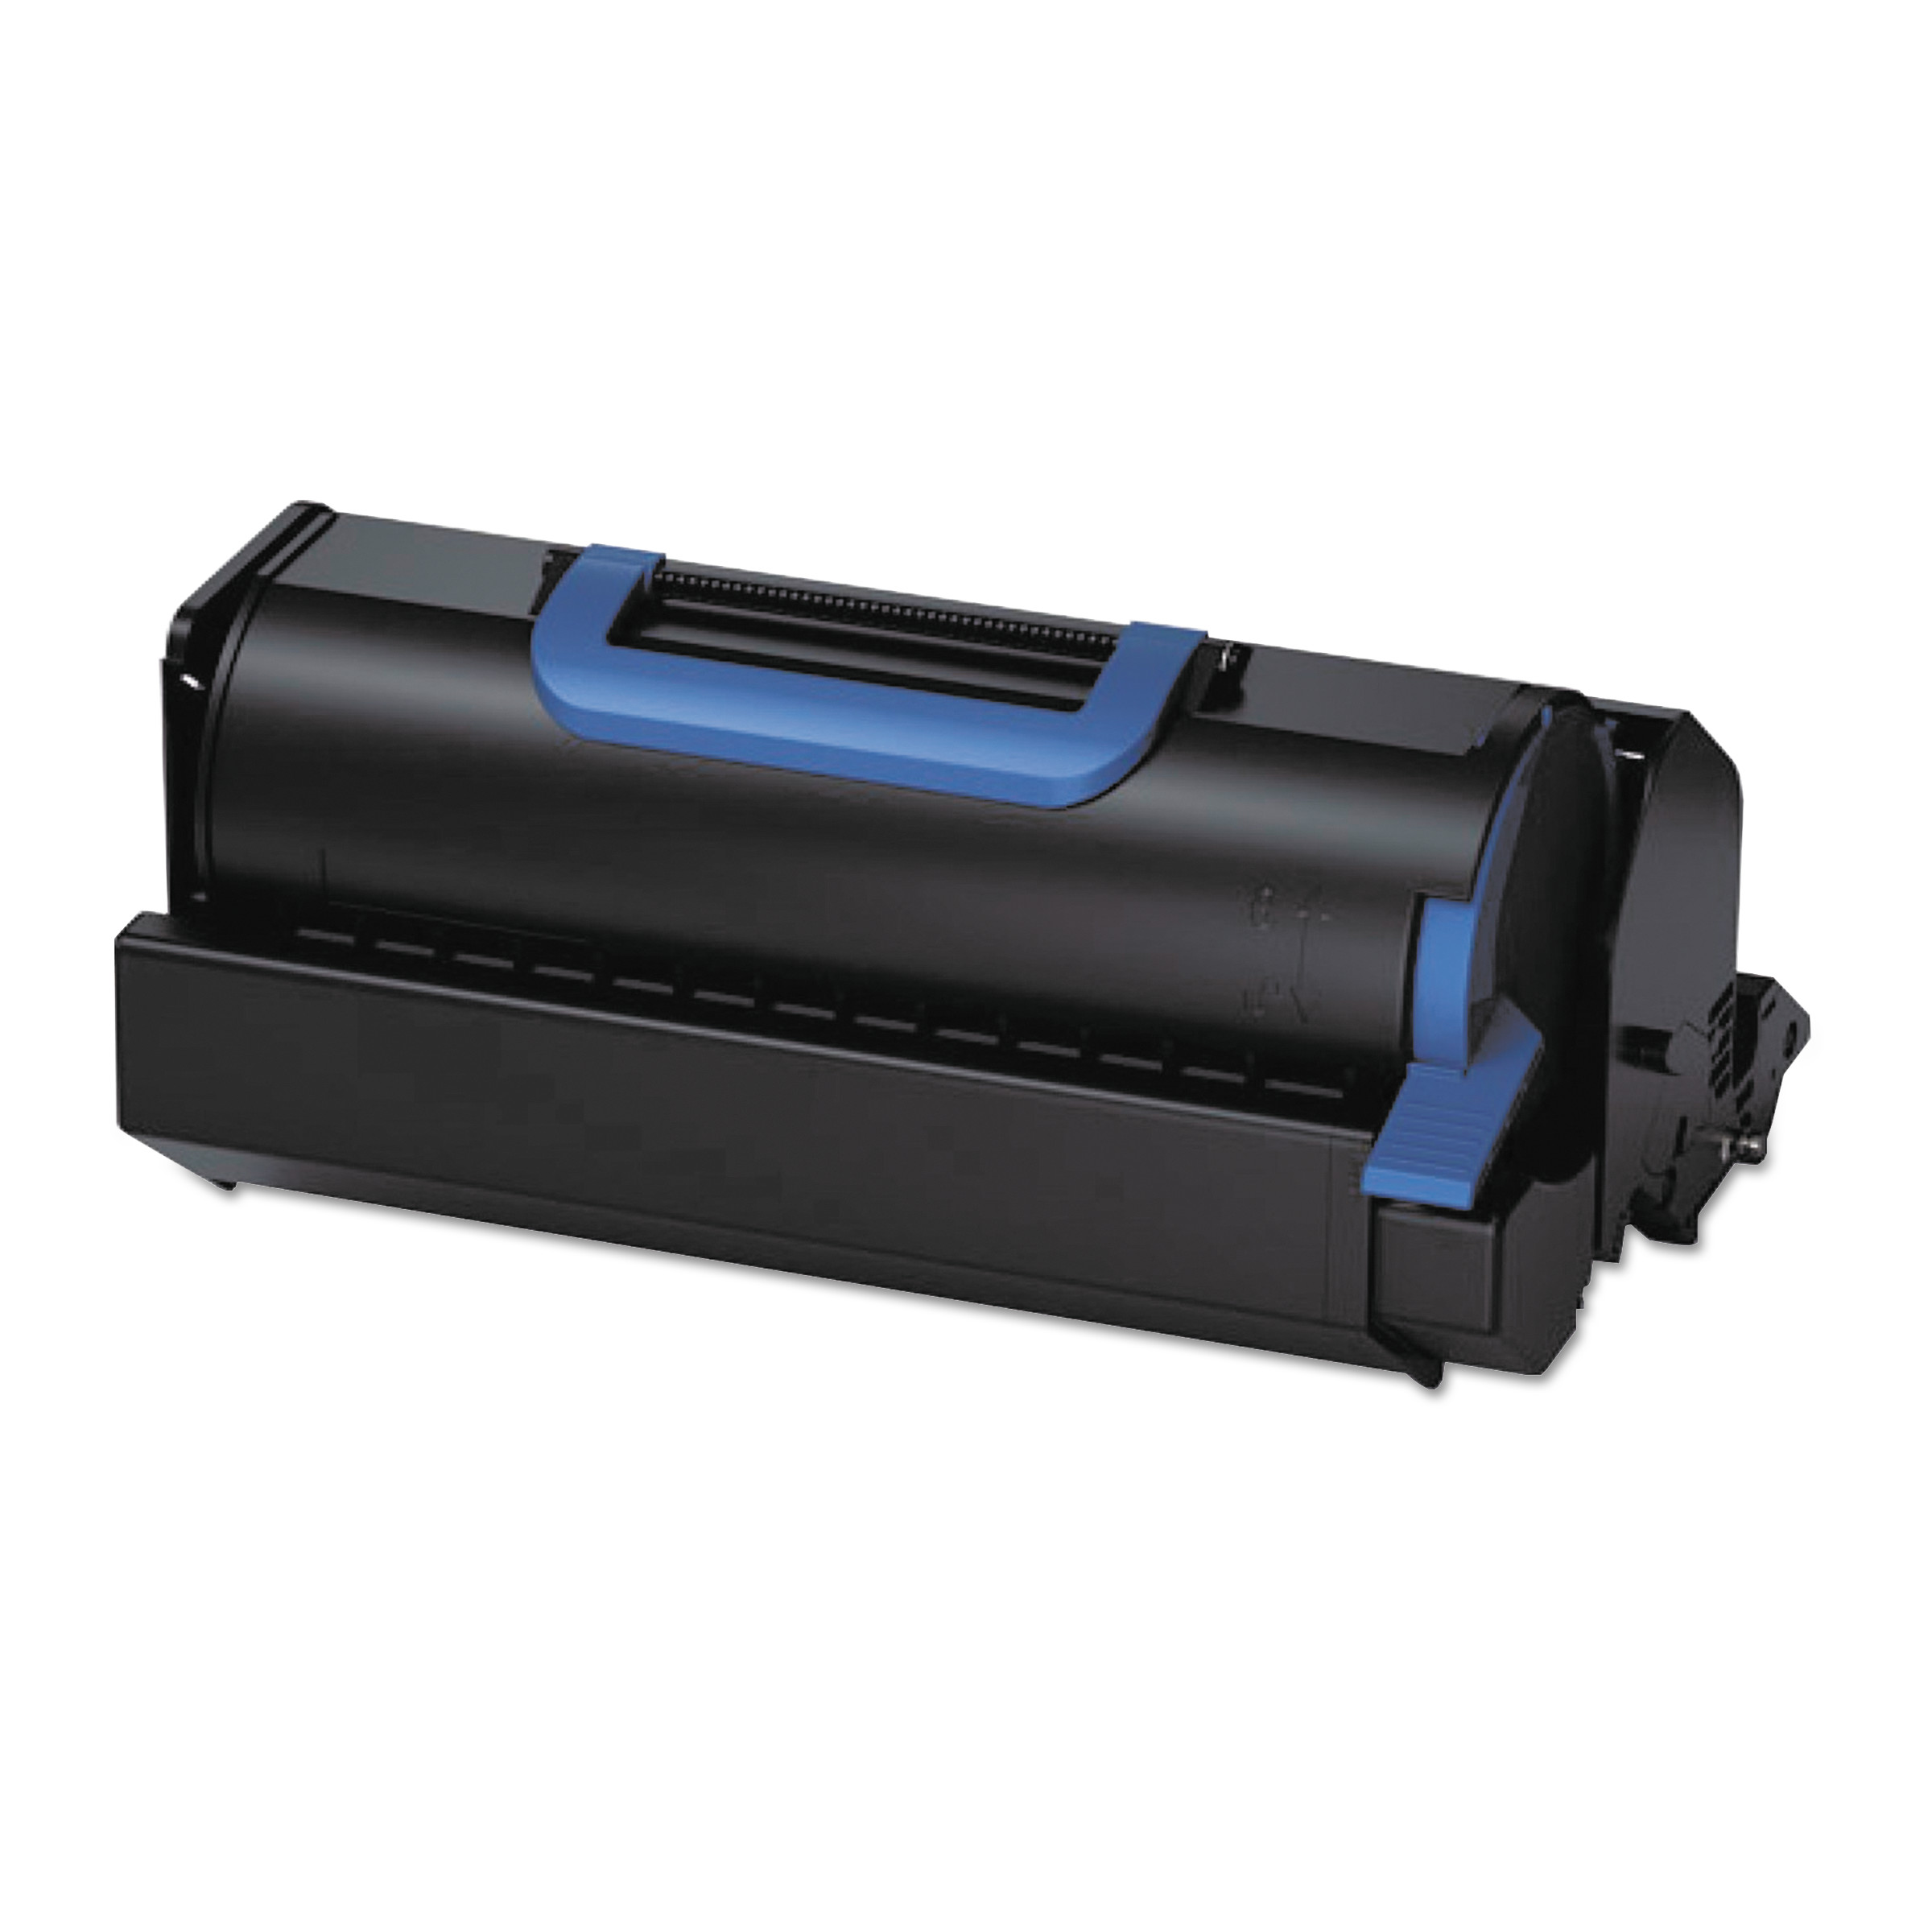 Compatible 45488901 High-Yield Toner, 25000 Page-Yield, Black